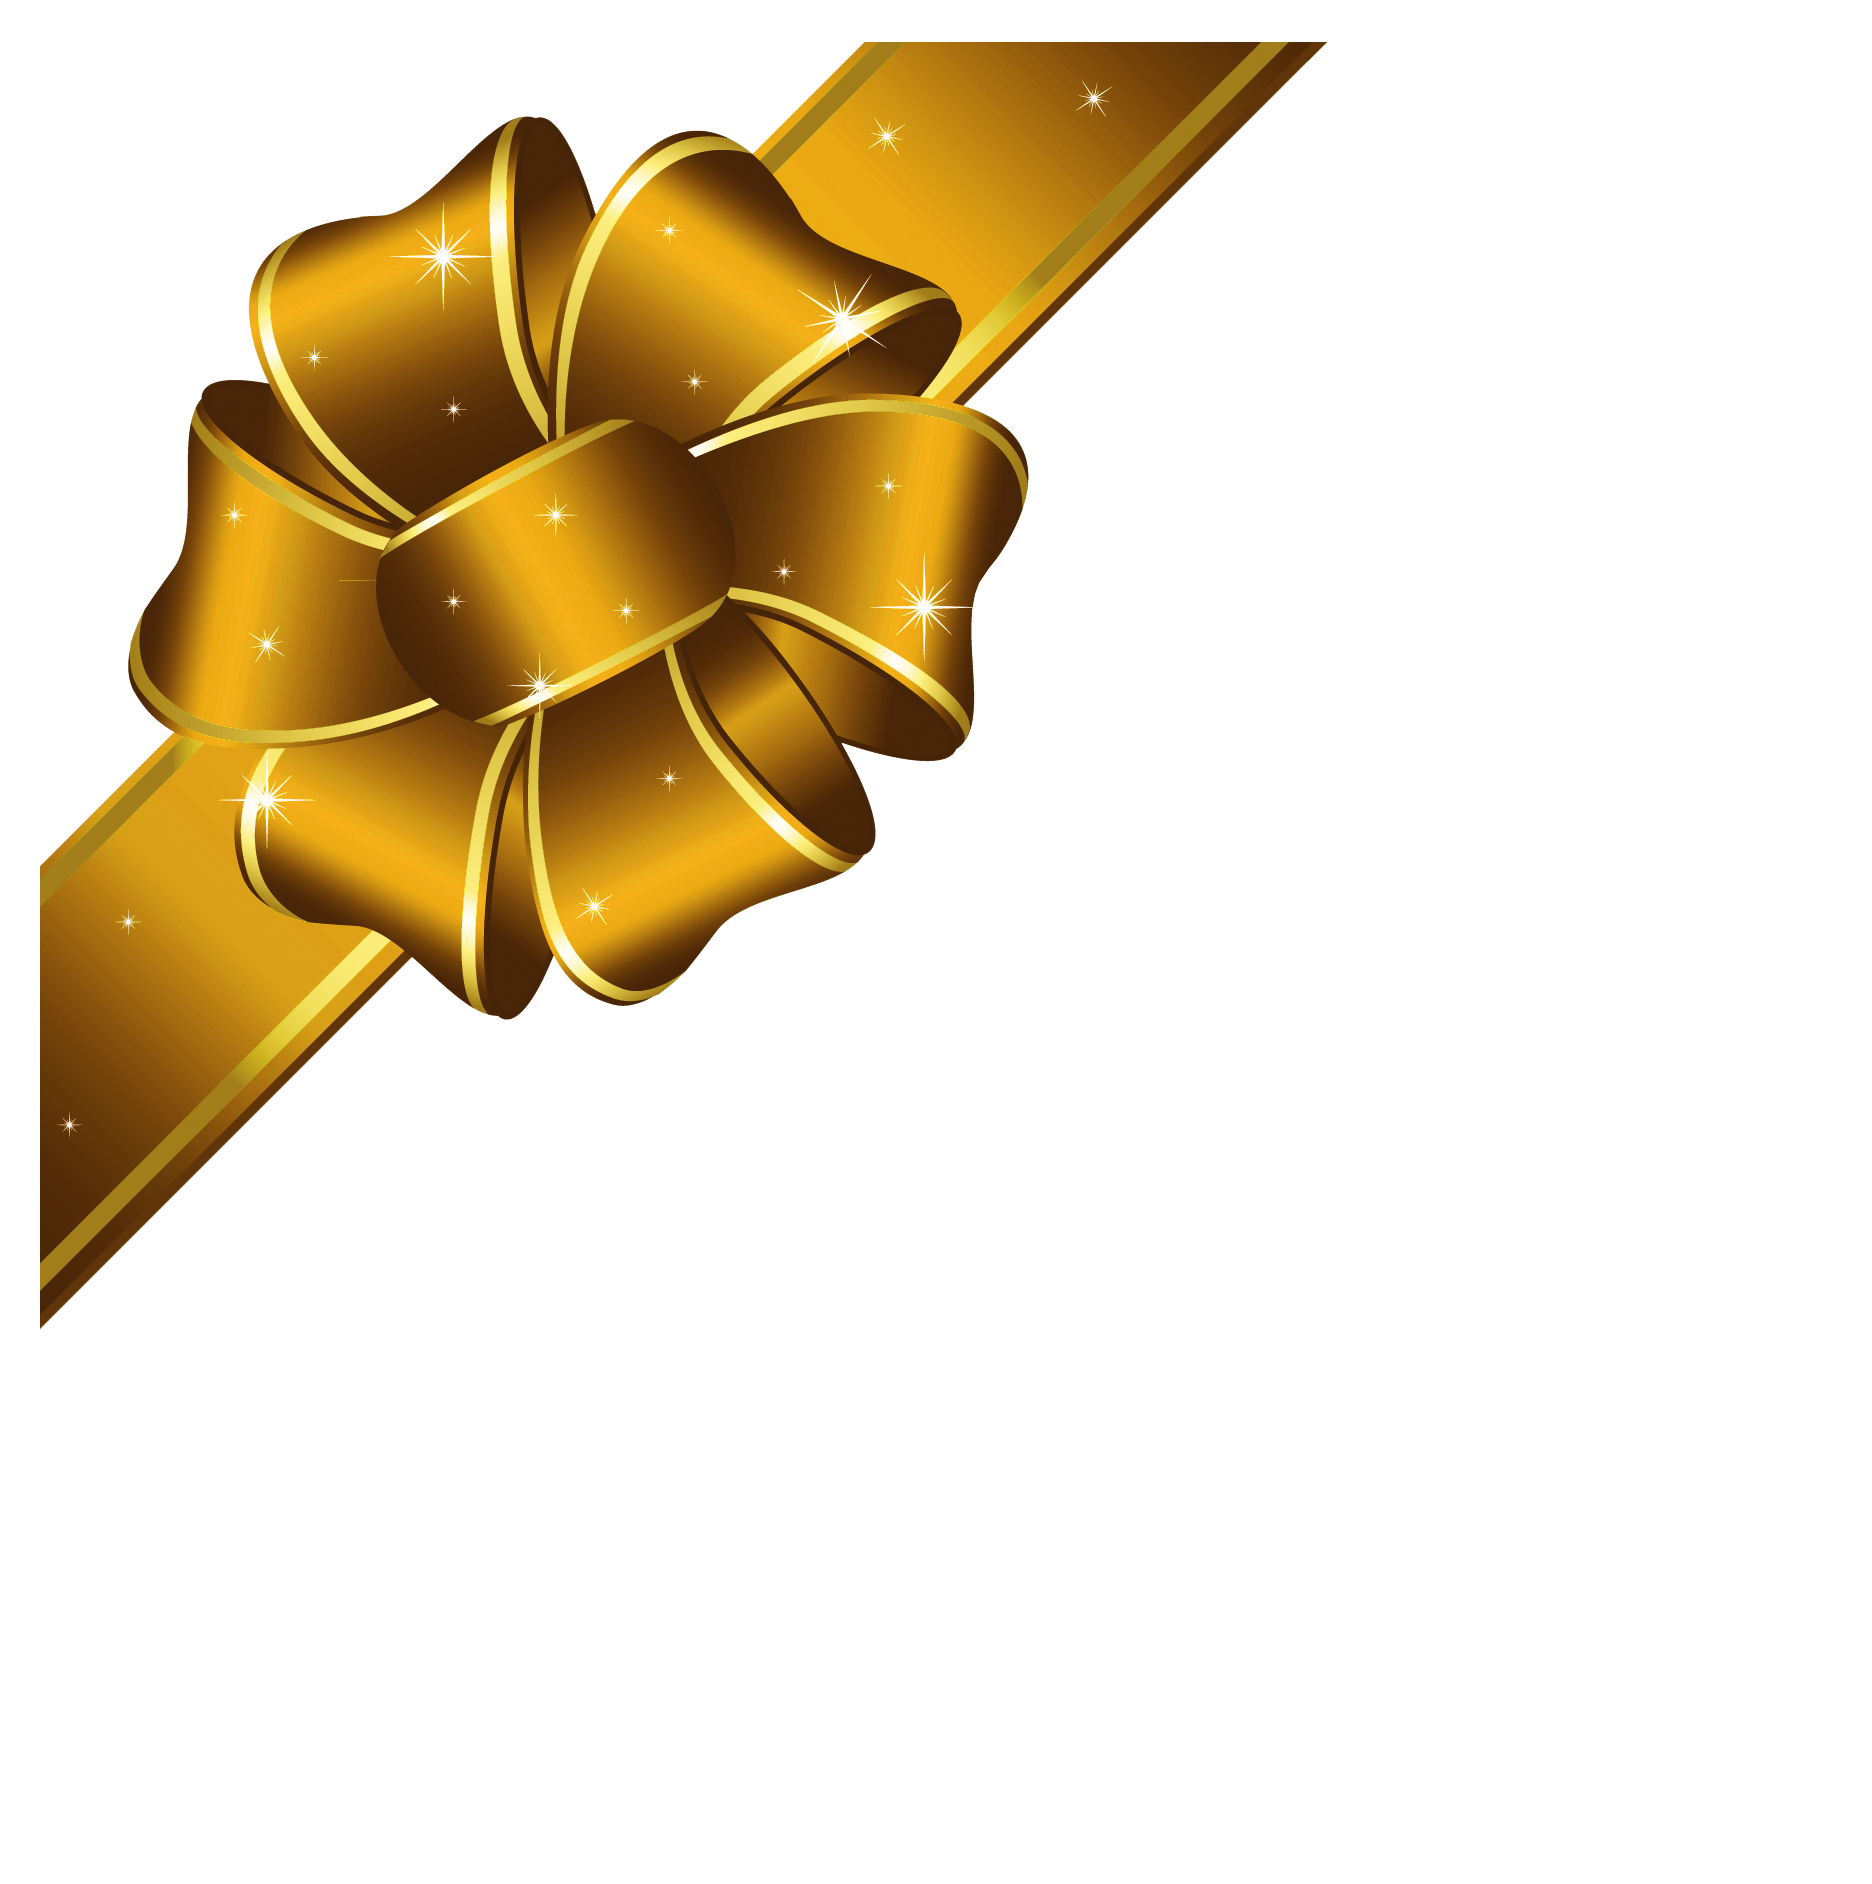 gold ribbon cliparts download clip art #24181